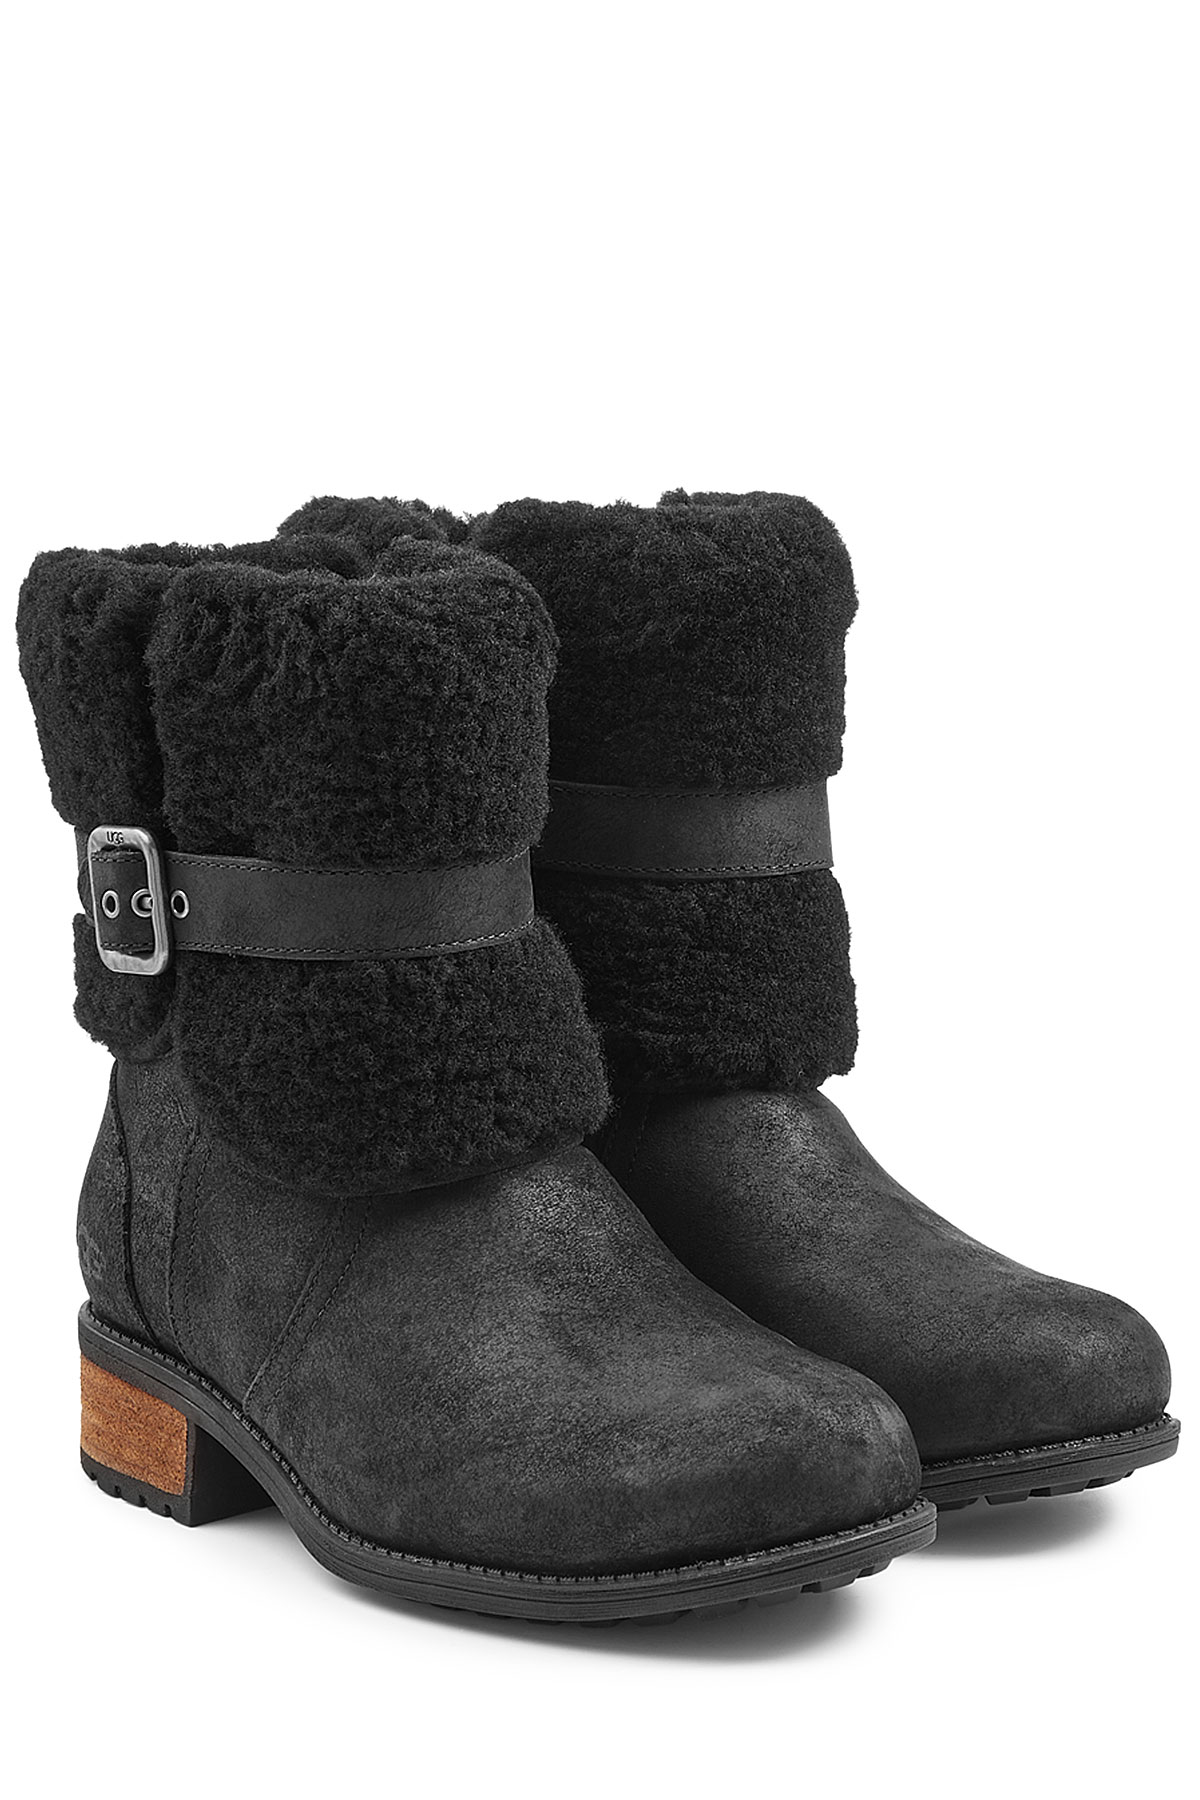 54955788e6b UGG Blayre Ii Suede Ankle Boots - Black